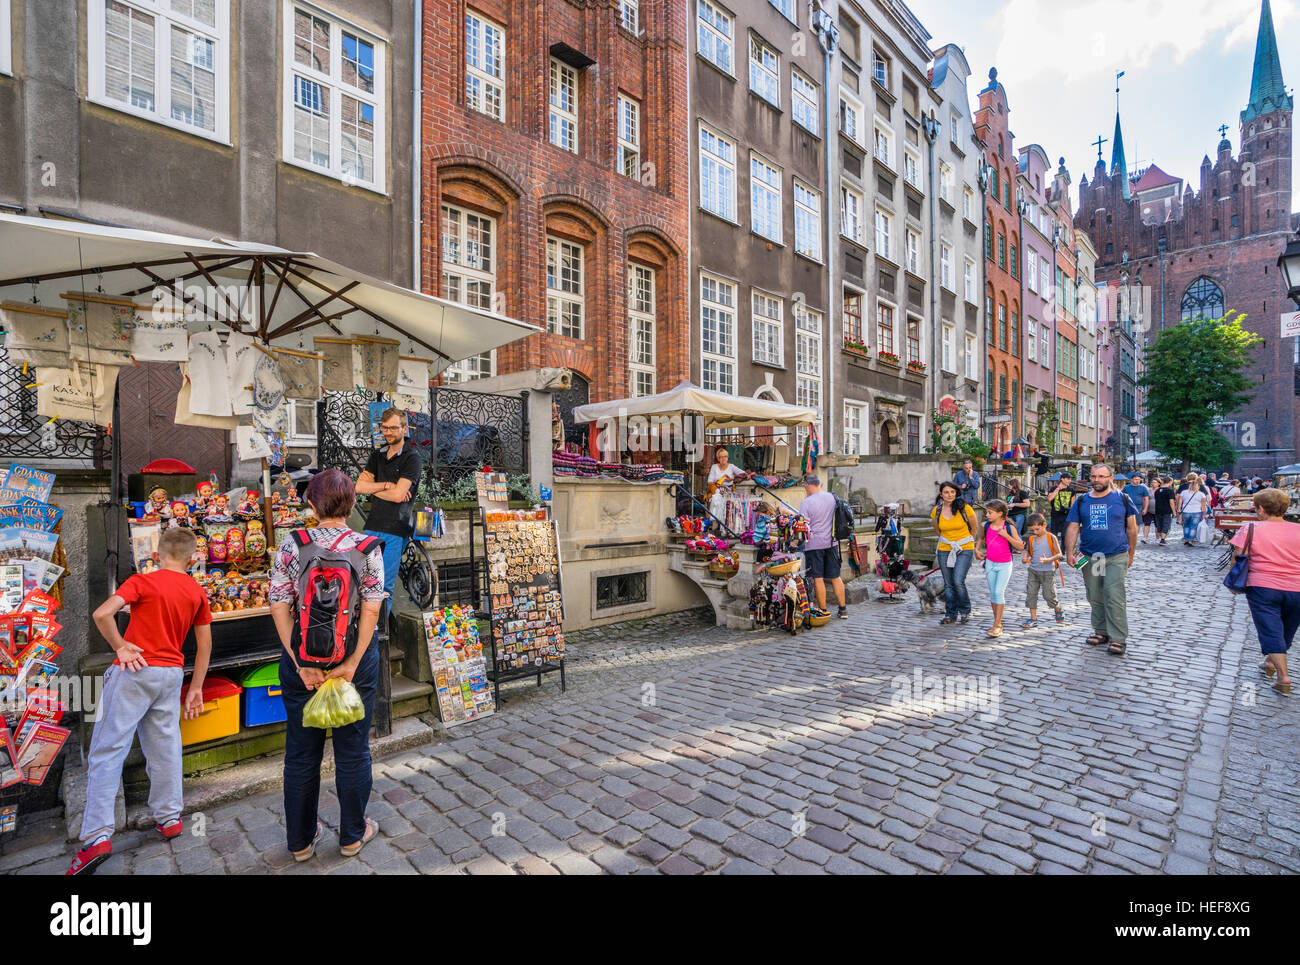 Poland, Pomerania, Gdansk (Danzig), view of cobbled Frauengasse (Mariacka Street), famous for its prominent porches - Stock Image